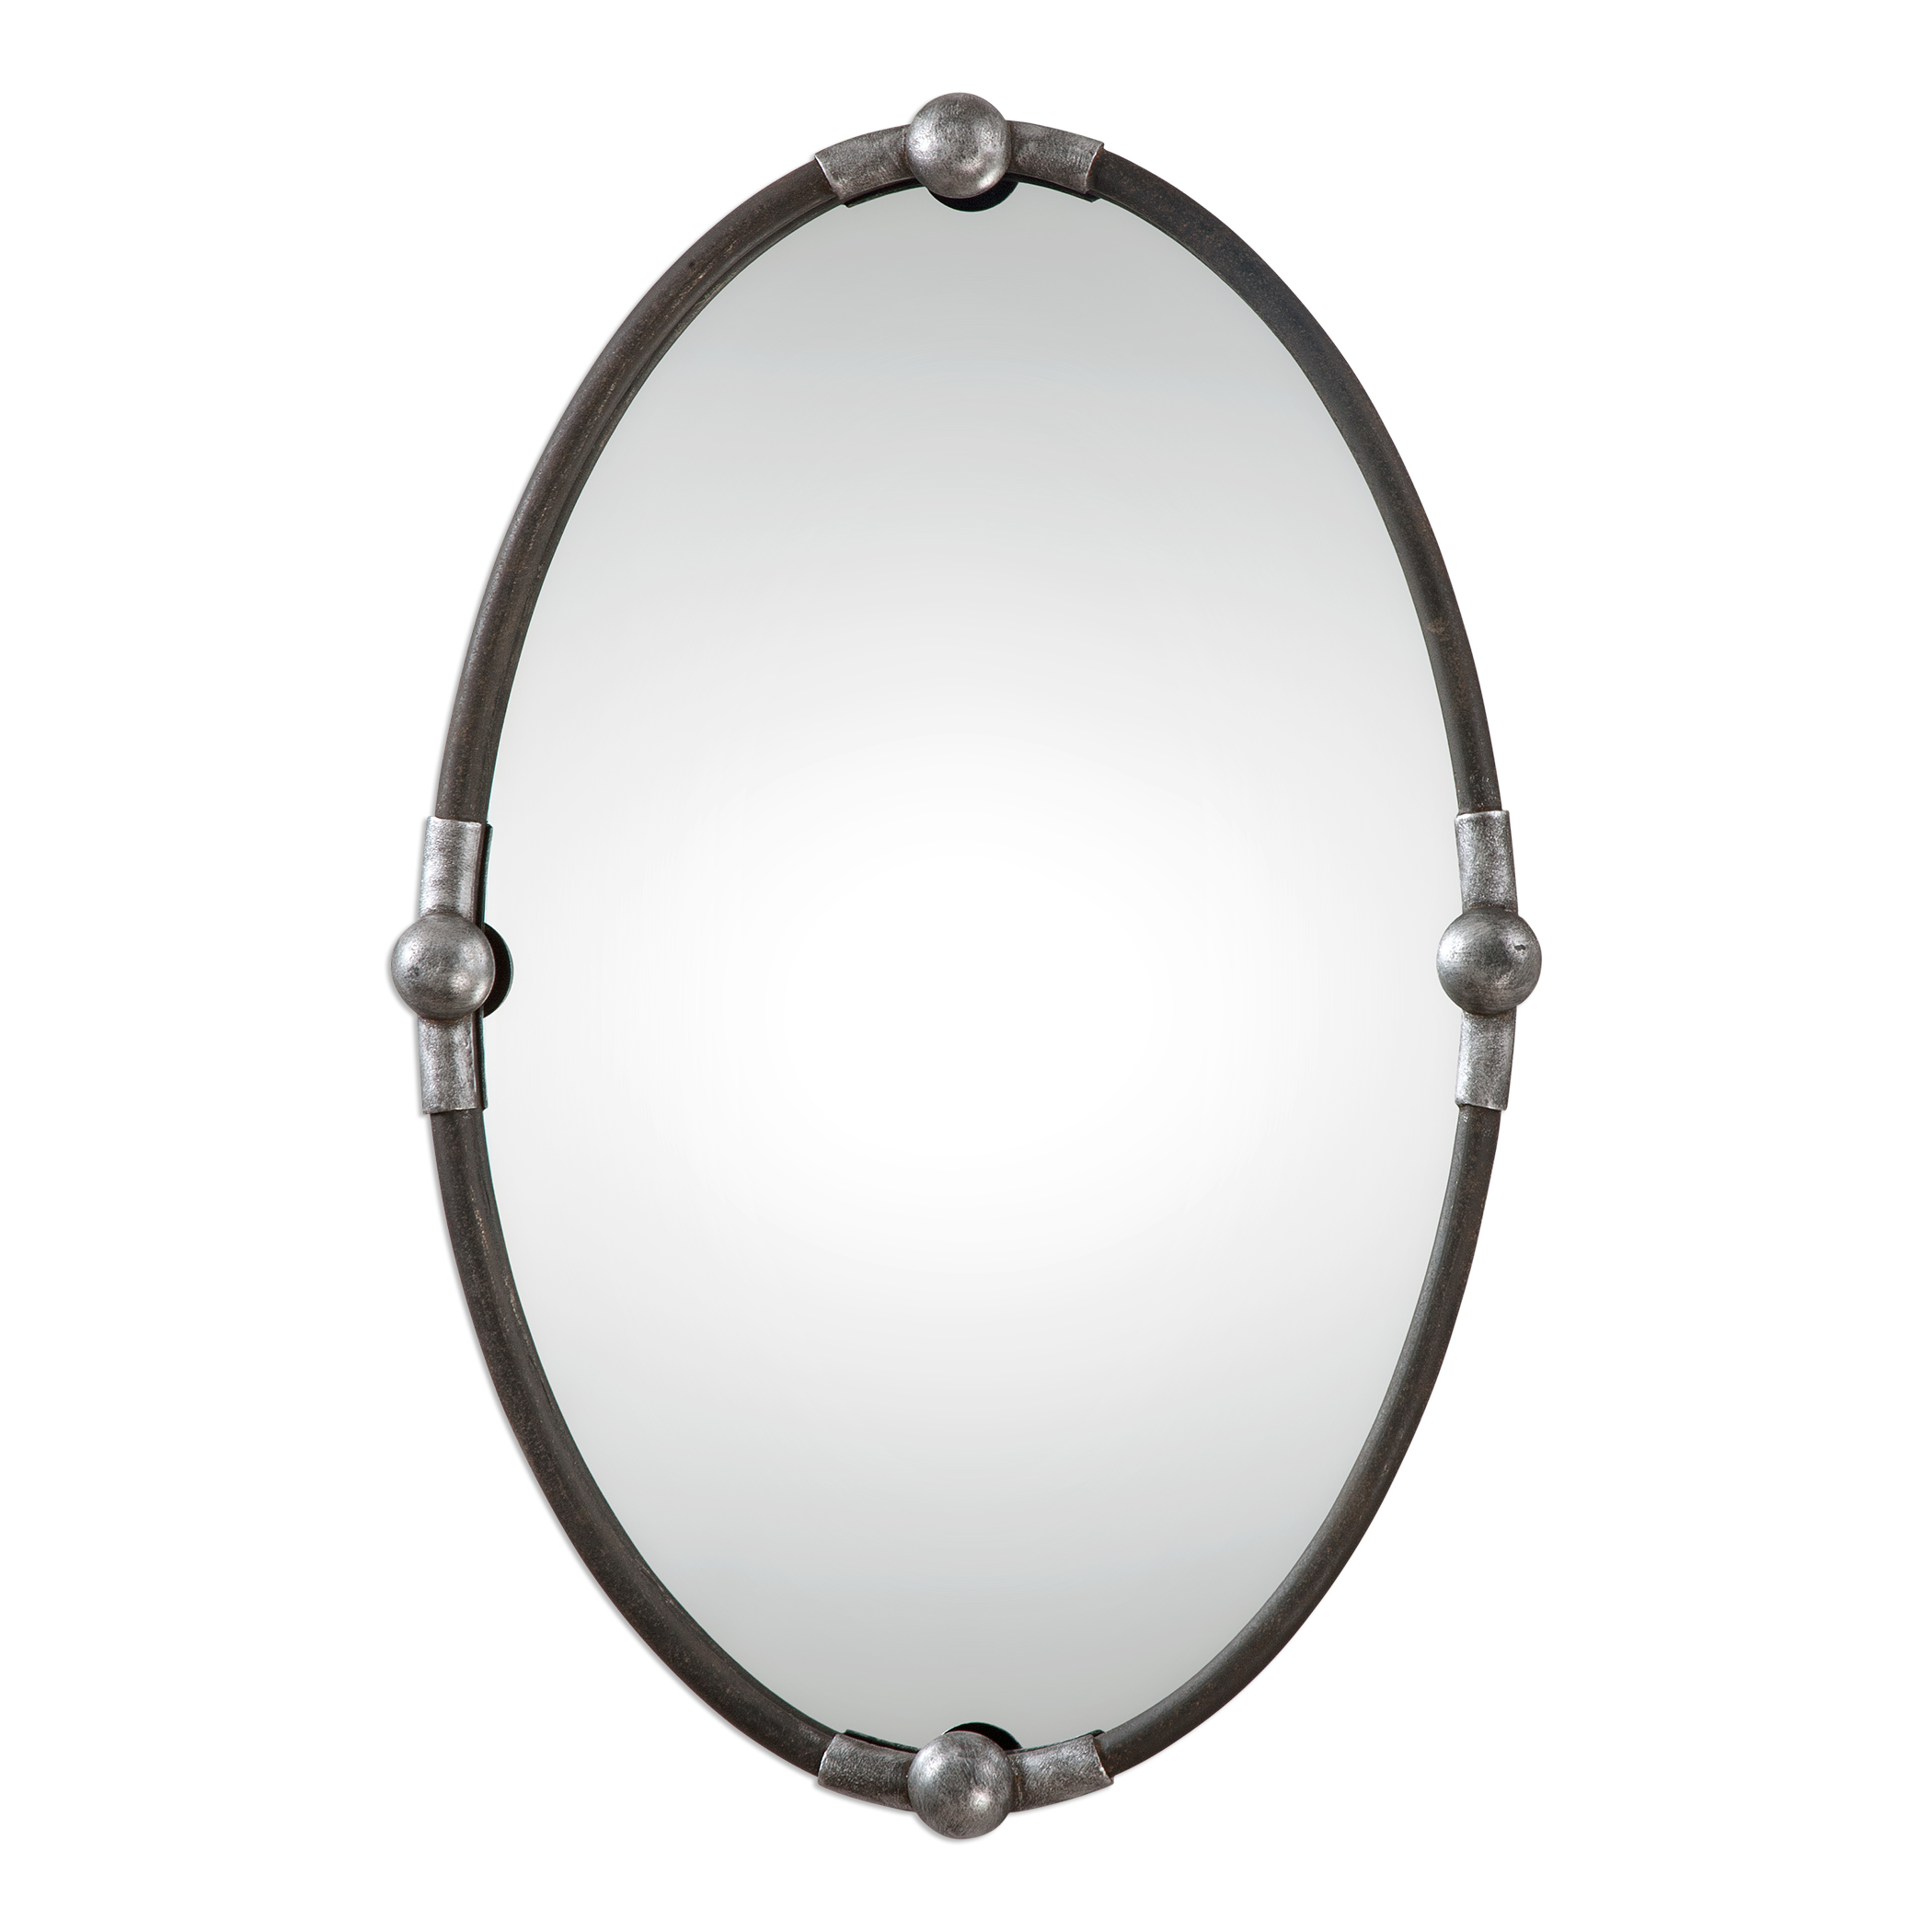 Uttermost Mirrors Carrick Black Oval Mirror - Item Number: 09064